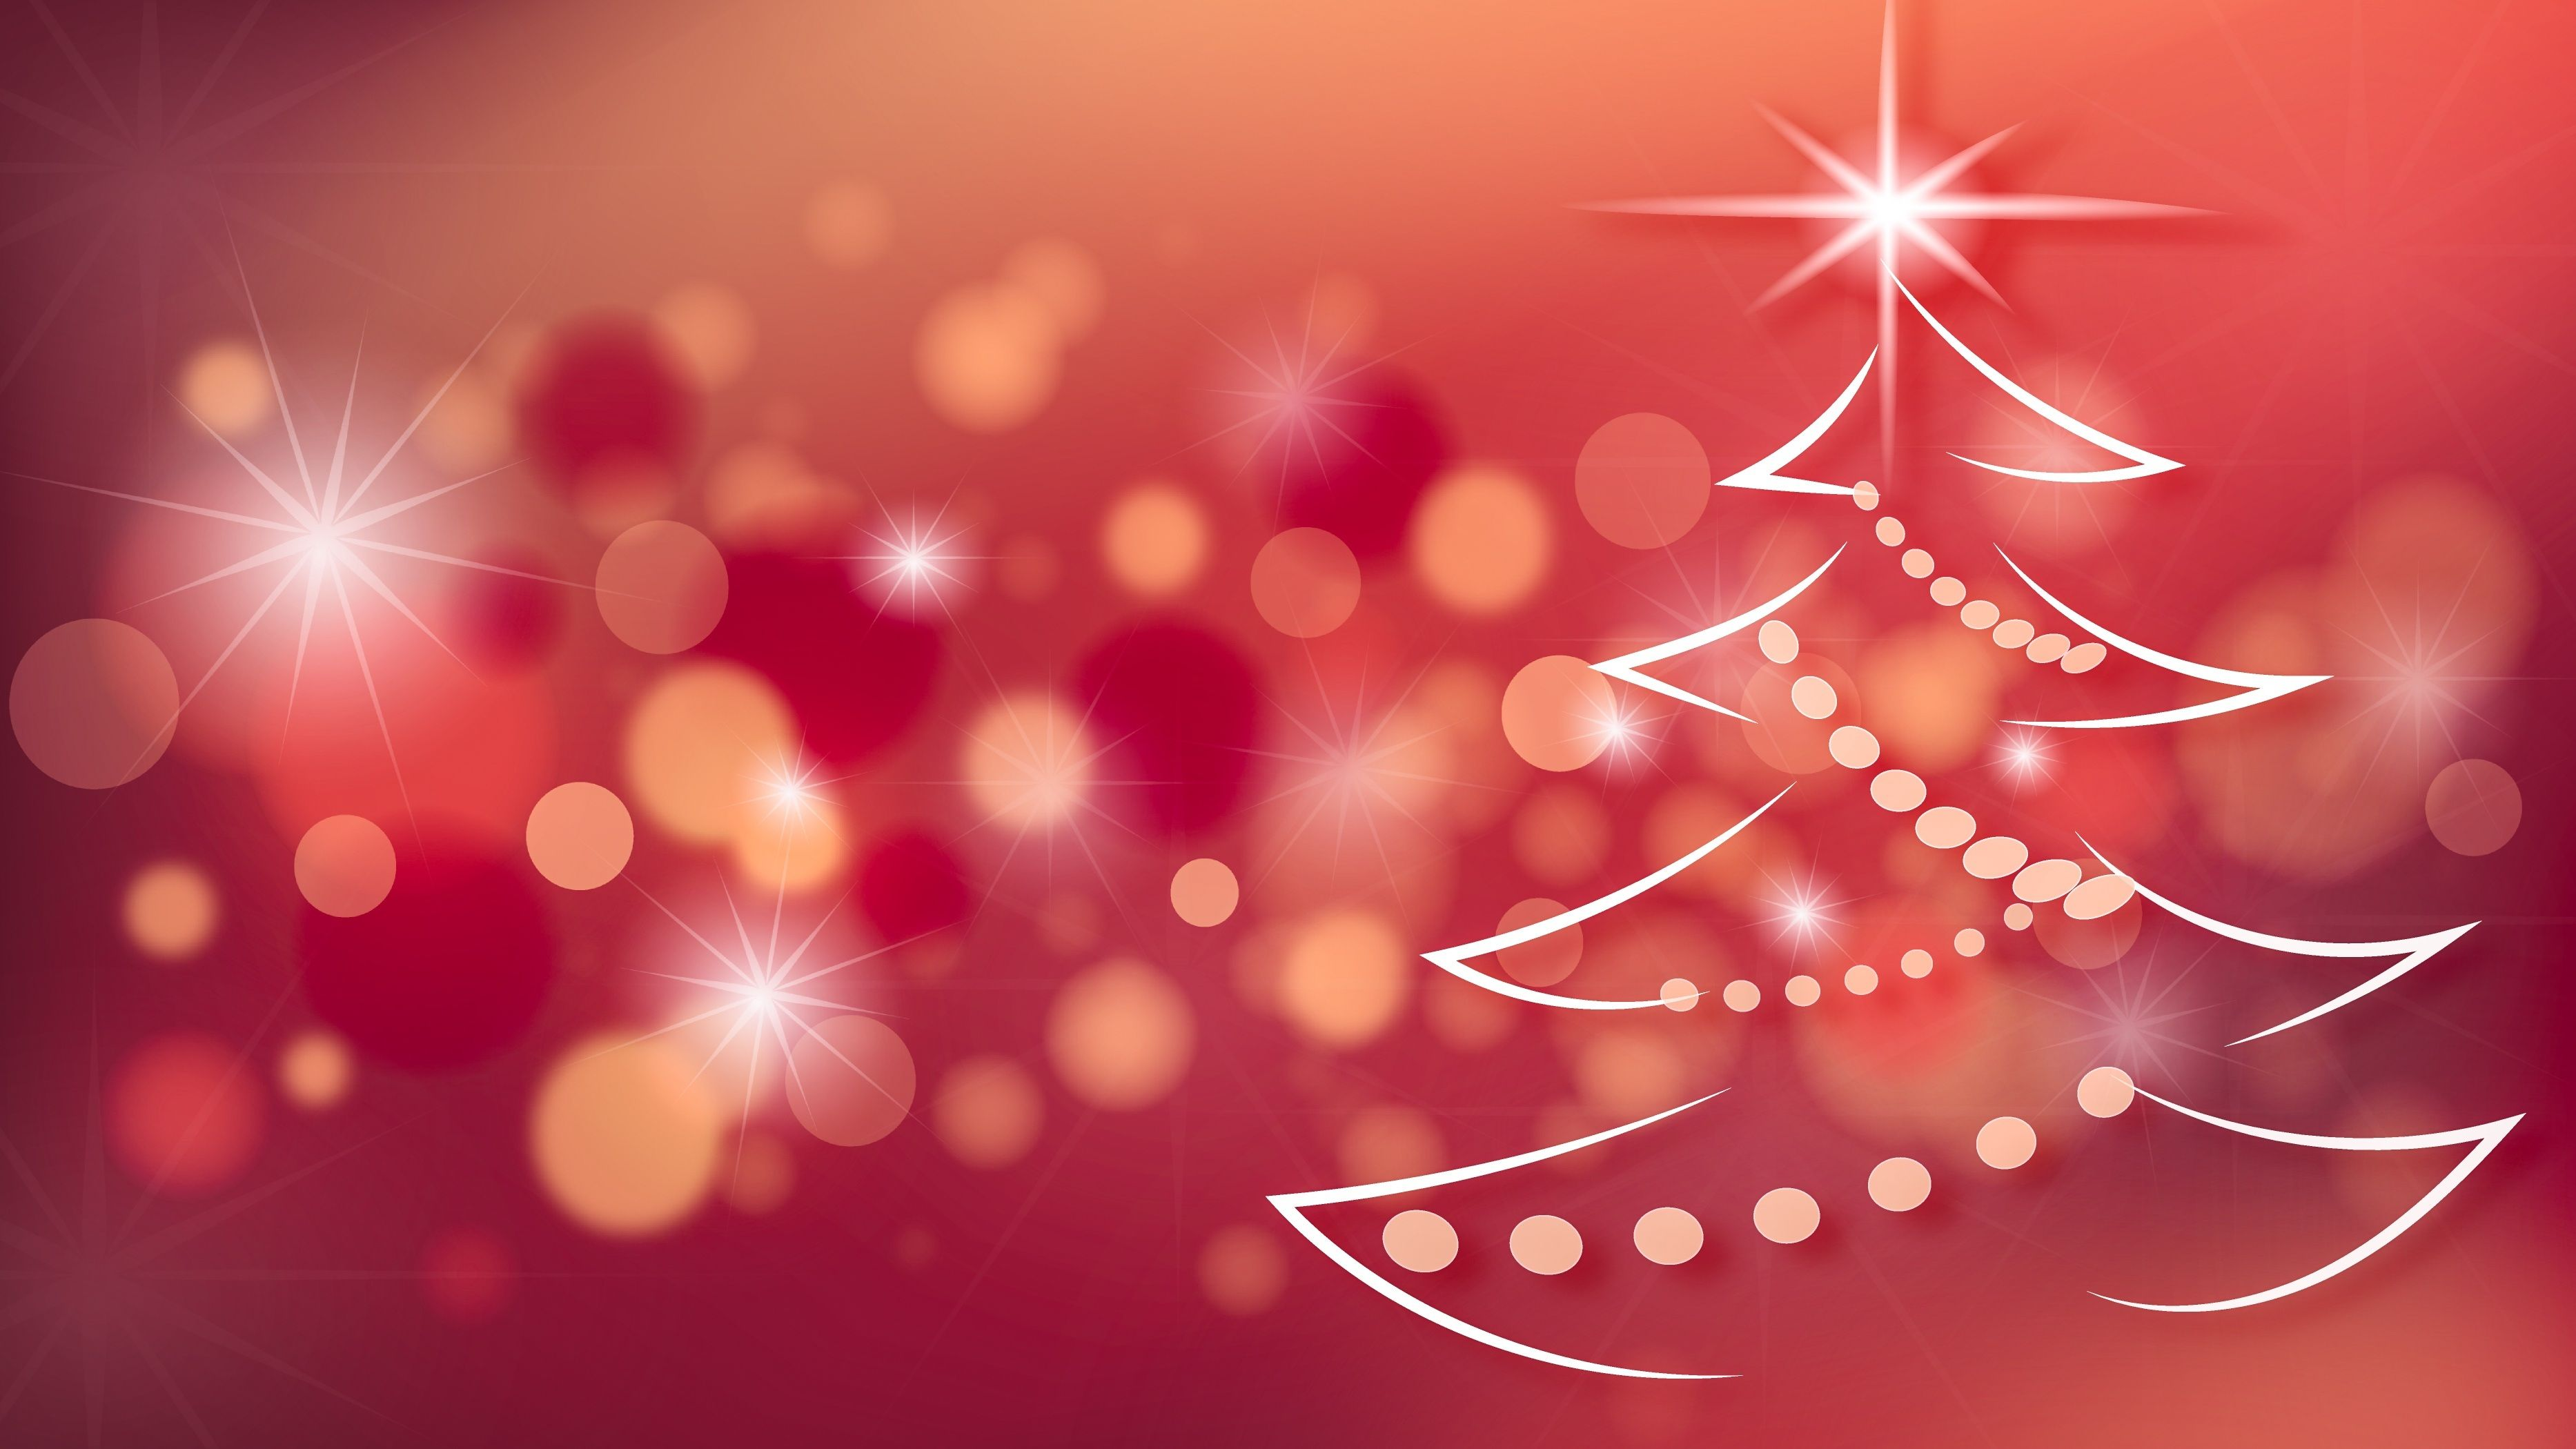 Christmas Backgrounds 4k, HD Celebrations, 4k Wallpapers, Image, Backgrounds, Photos and Pictures